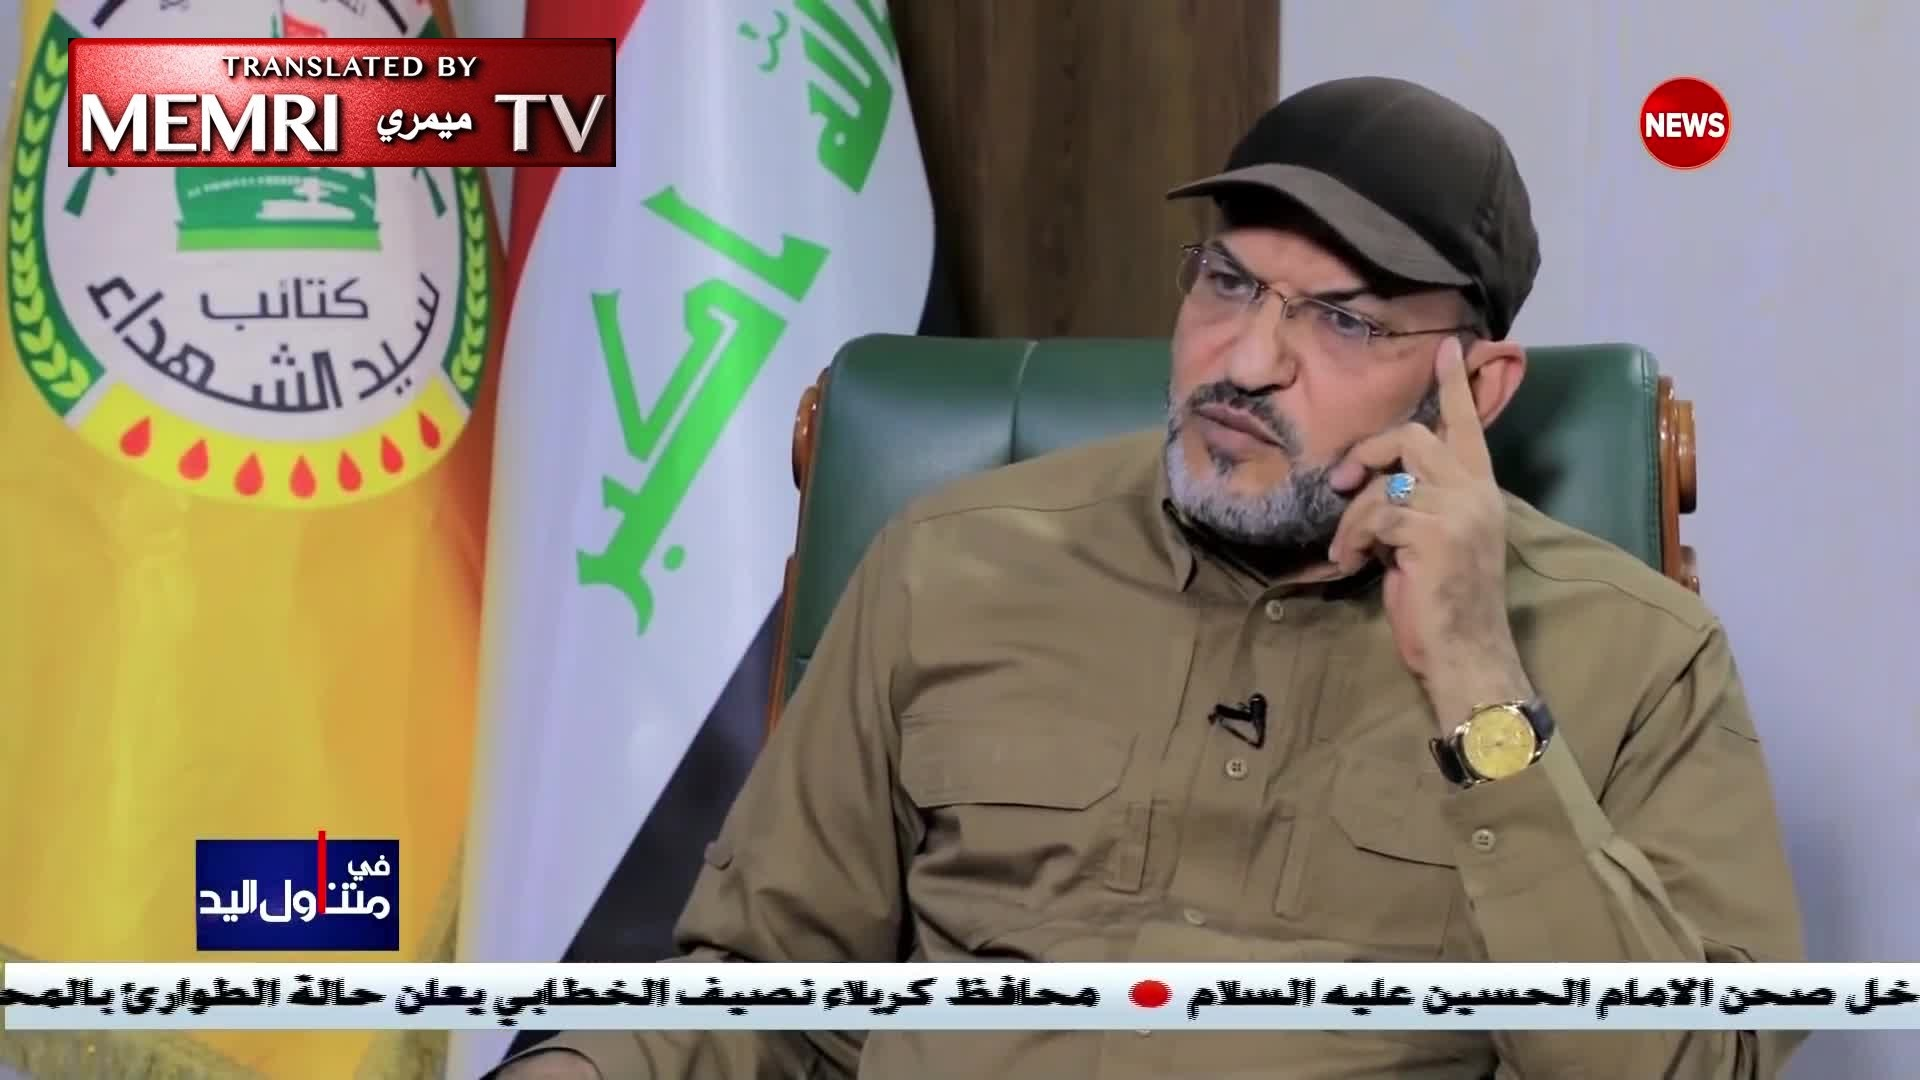 Iraqi Shiite Militia Leader Abu Alaa Al-Walai: U.S. Forces in Iraq Will Be Taken Hostage in Event of U.S.-Iran War; We Are Deployed Near All U.S. Bases